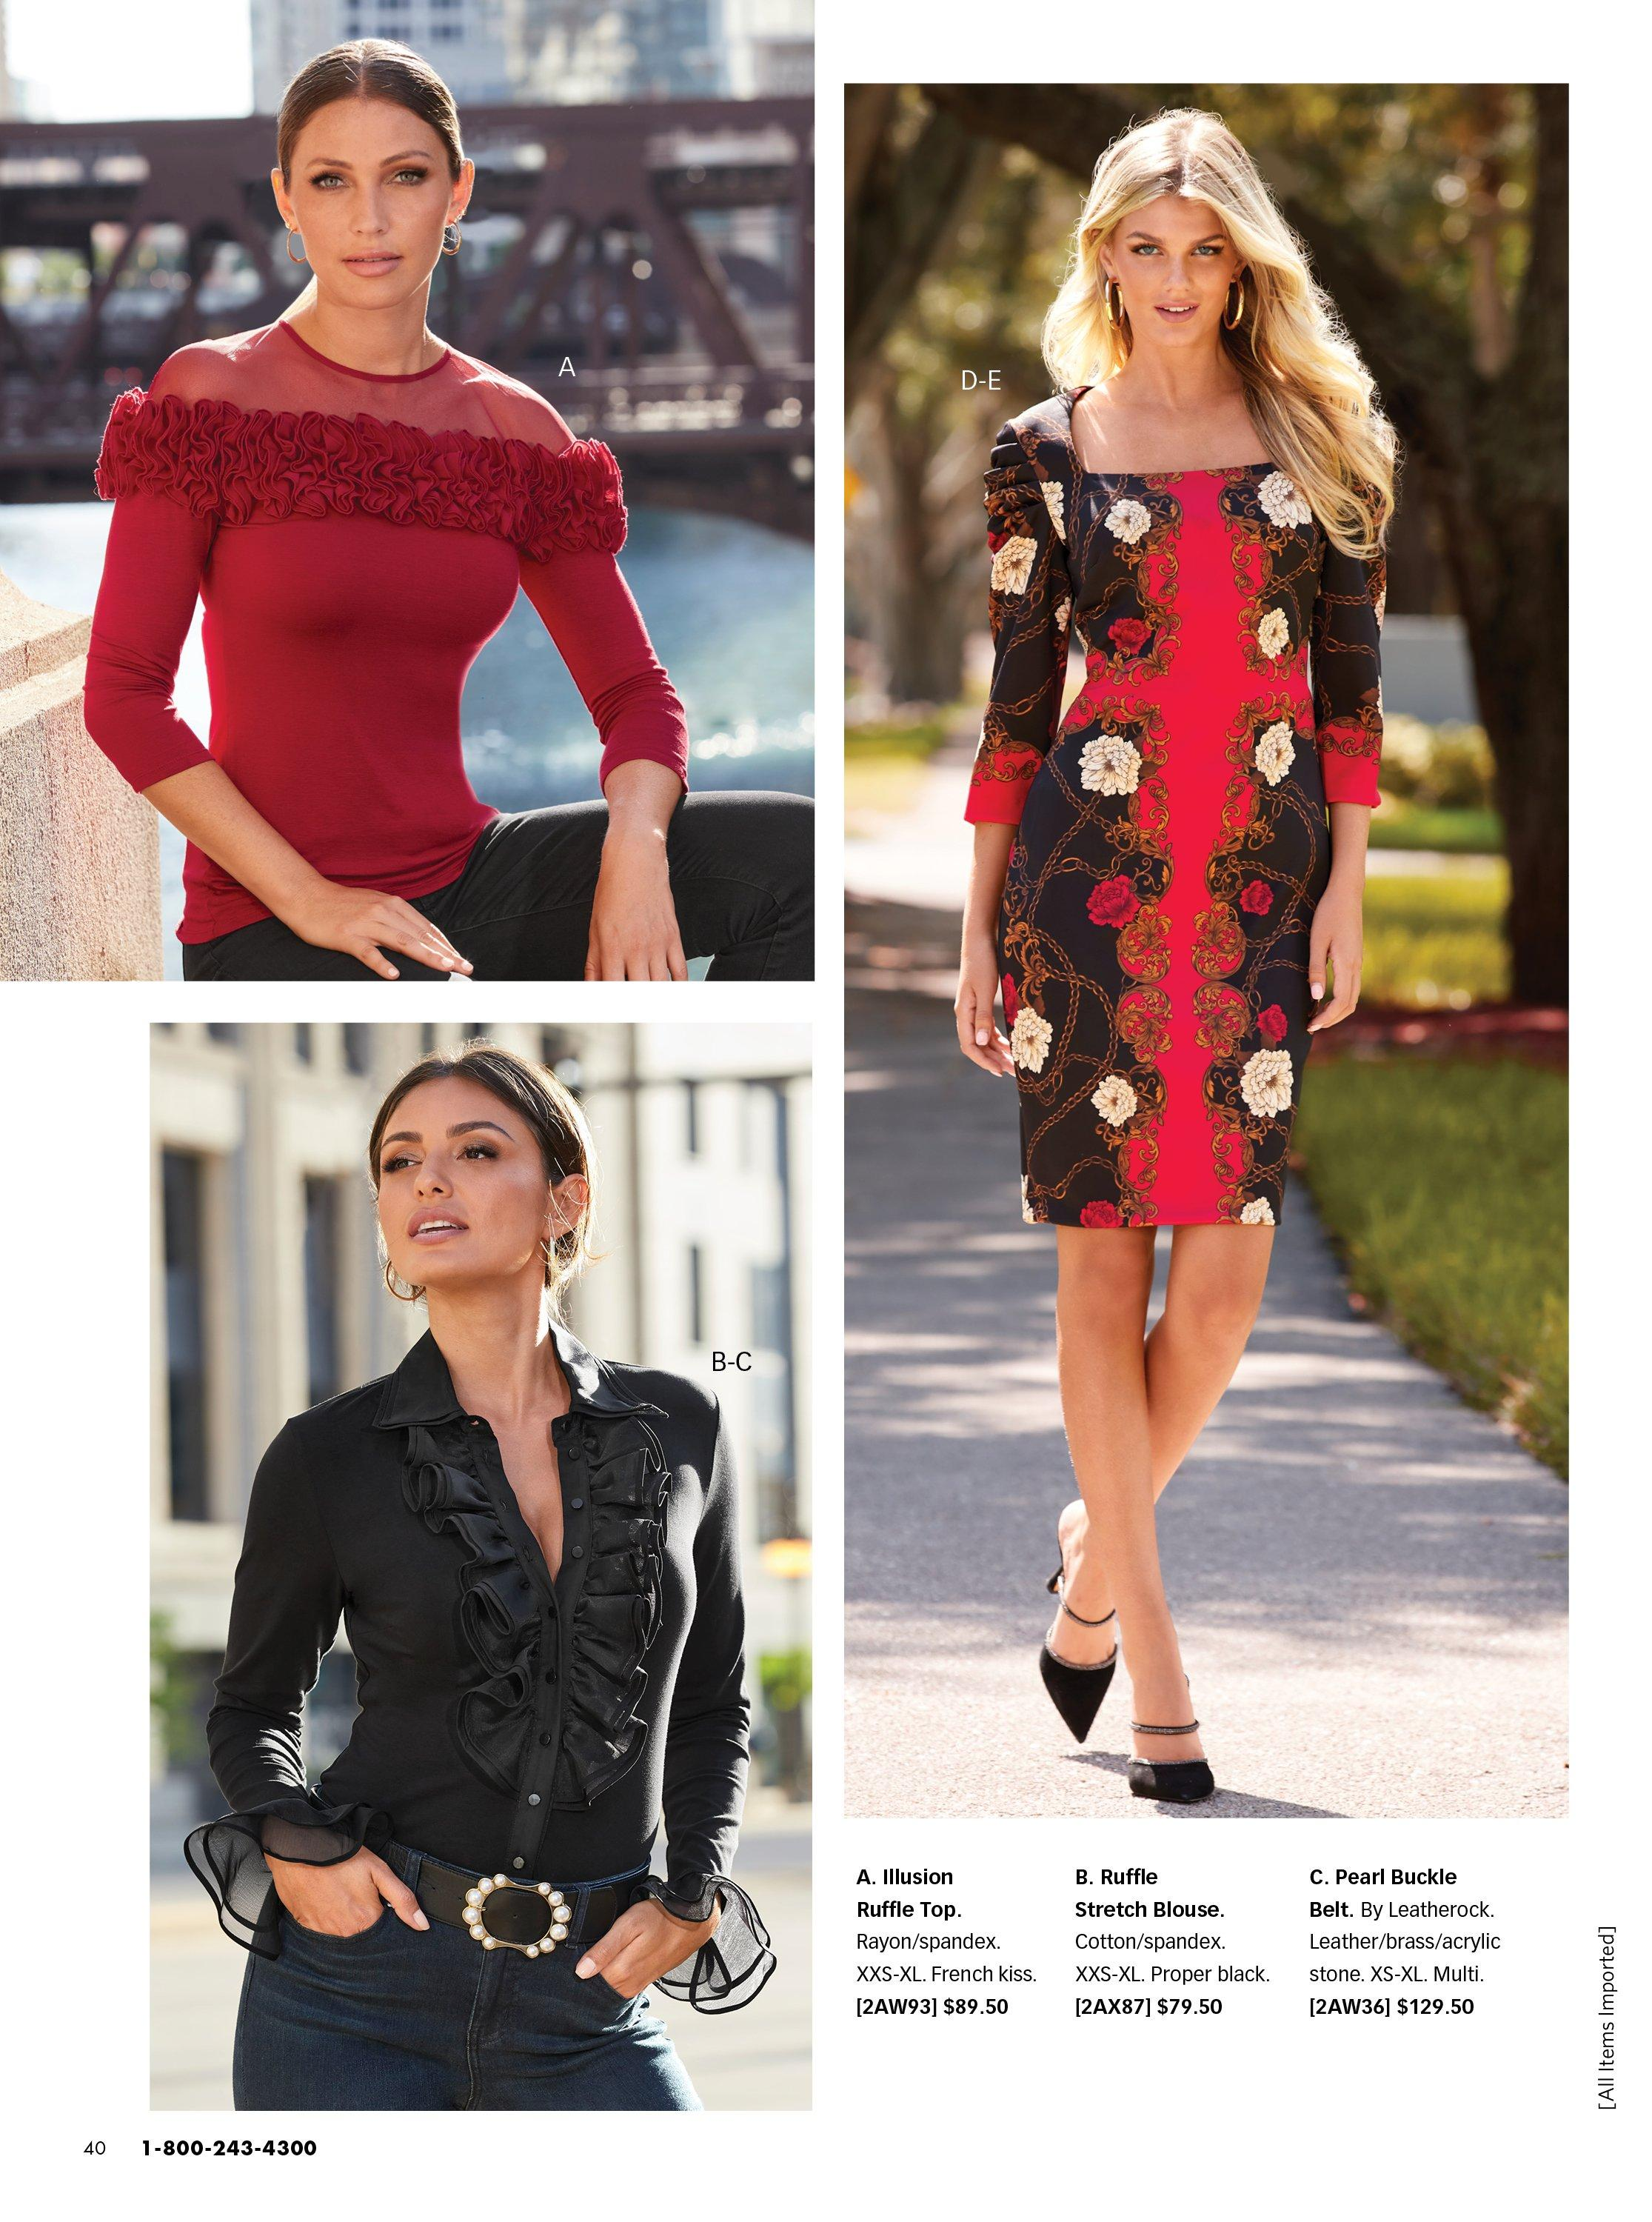 Top left model wearing a red illusion ruffle sweater. bottom left ,model wearing a black ruffle blouse, black pearl embellished belt, and jeans. right model wearing a black and red scroll print long sleeve sheath dress.